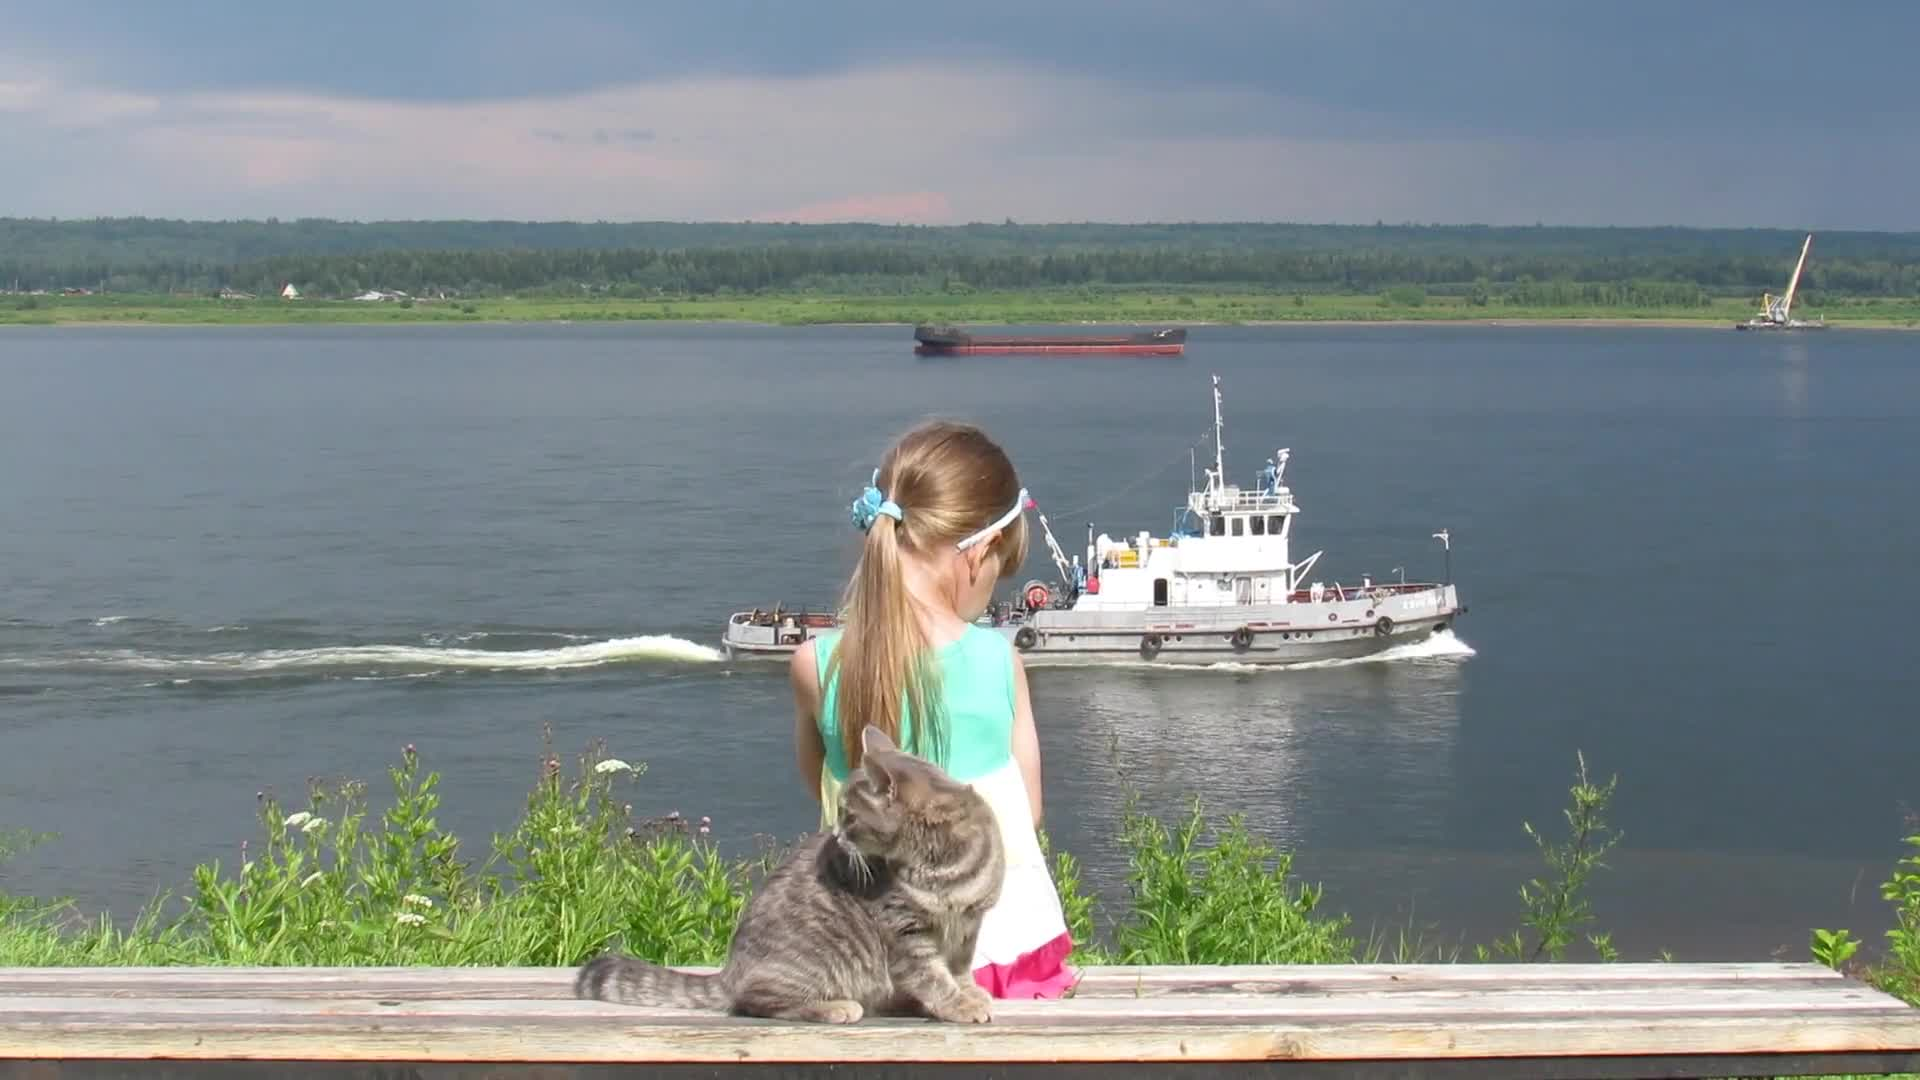 The little girl cat surprise boat river